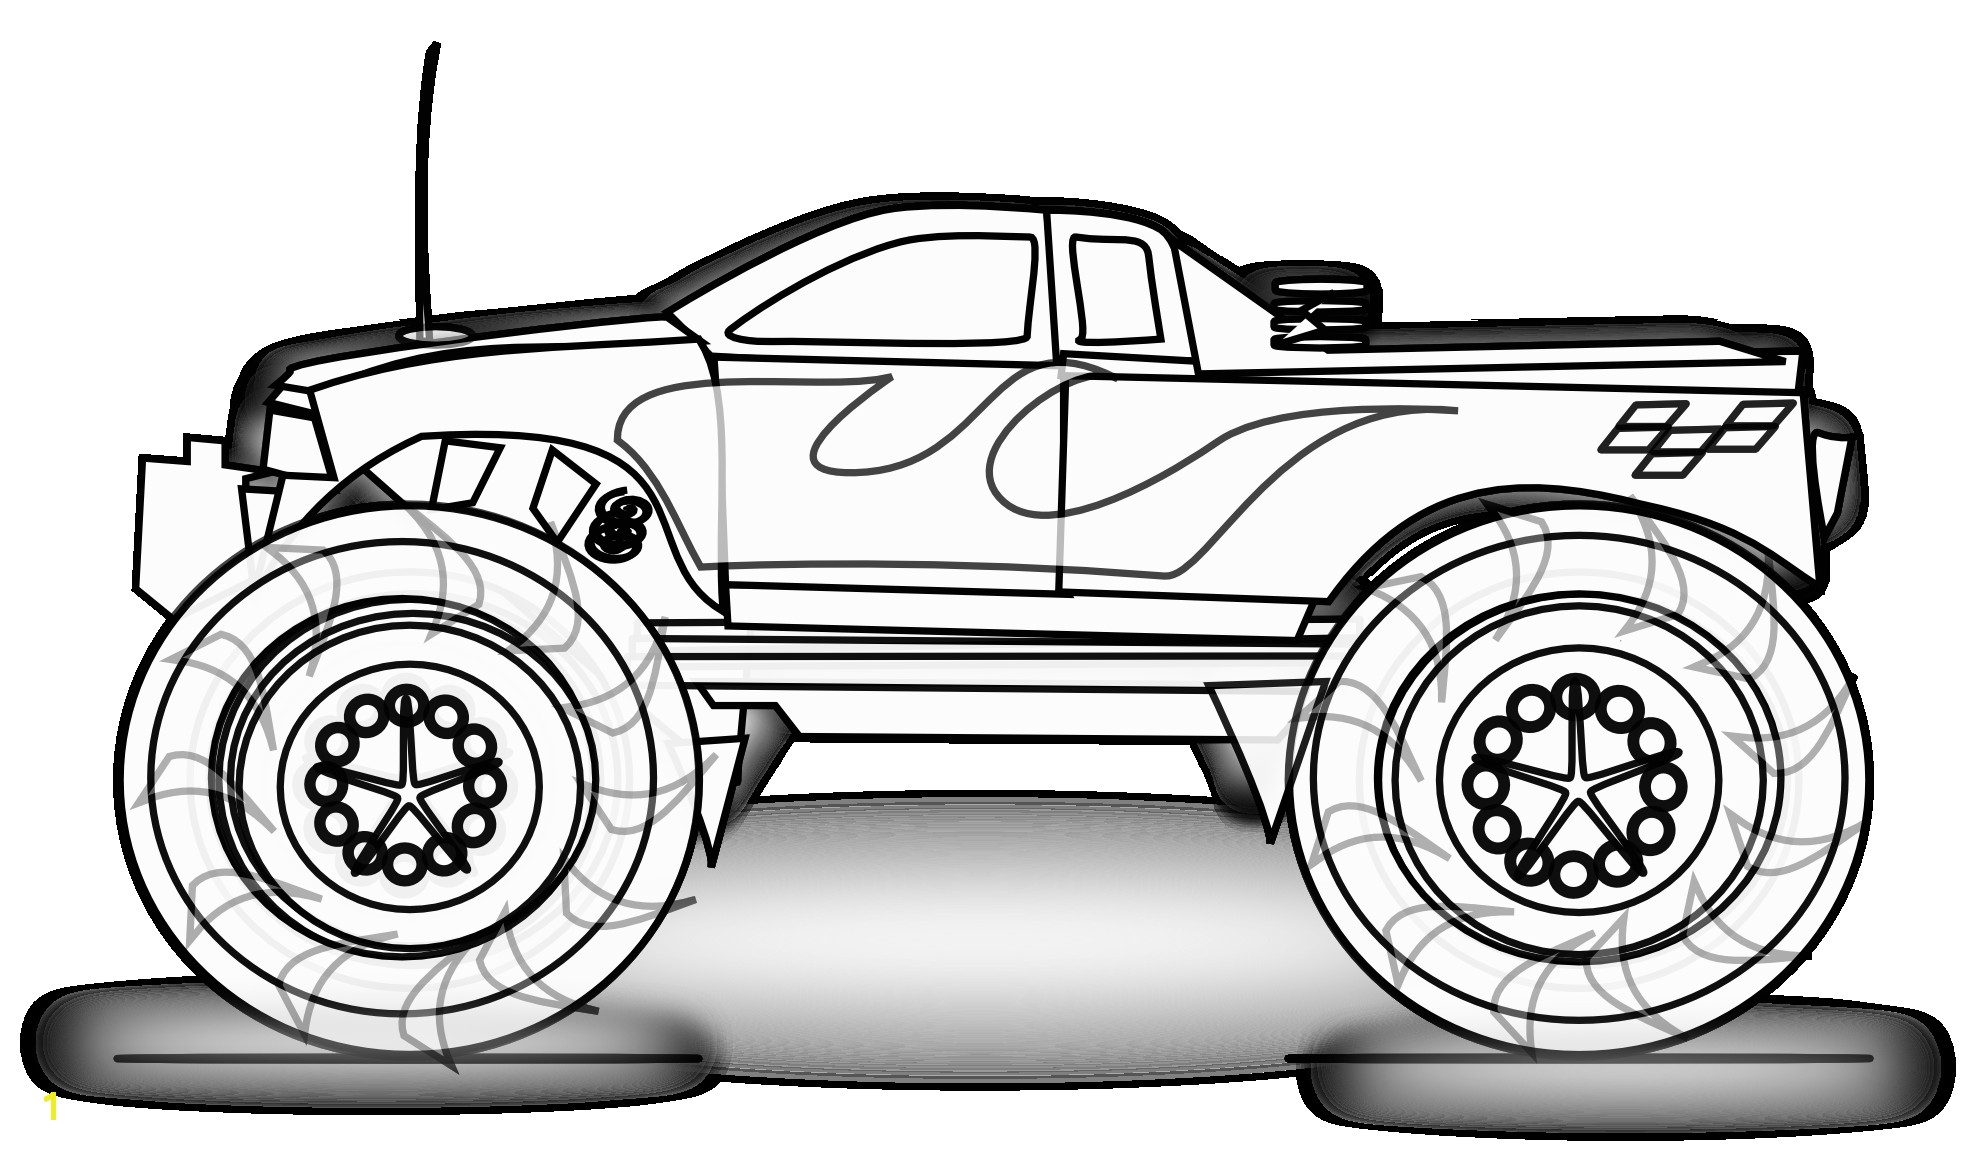 Coloring Pages Of Huge Monster Trucks Free Printable Monster Truck Coloring Pages for Kids